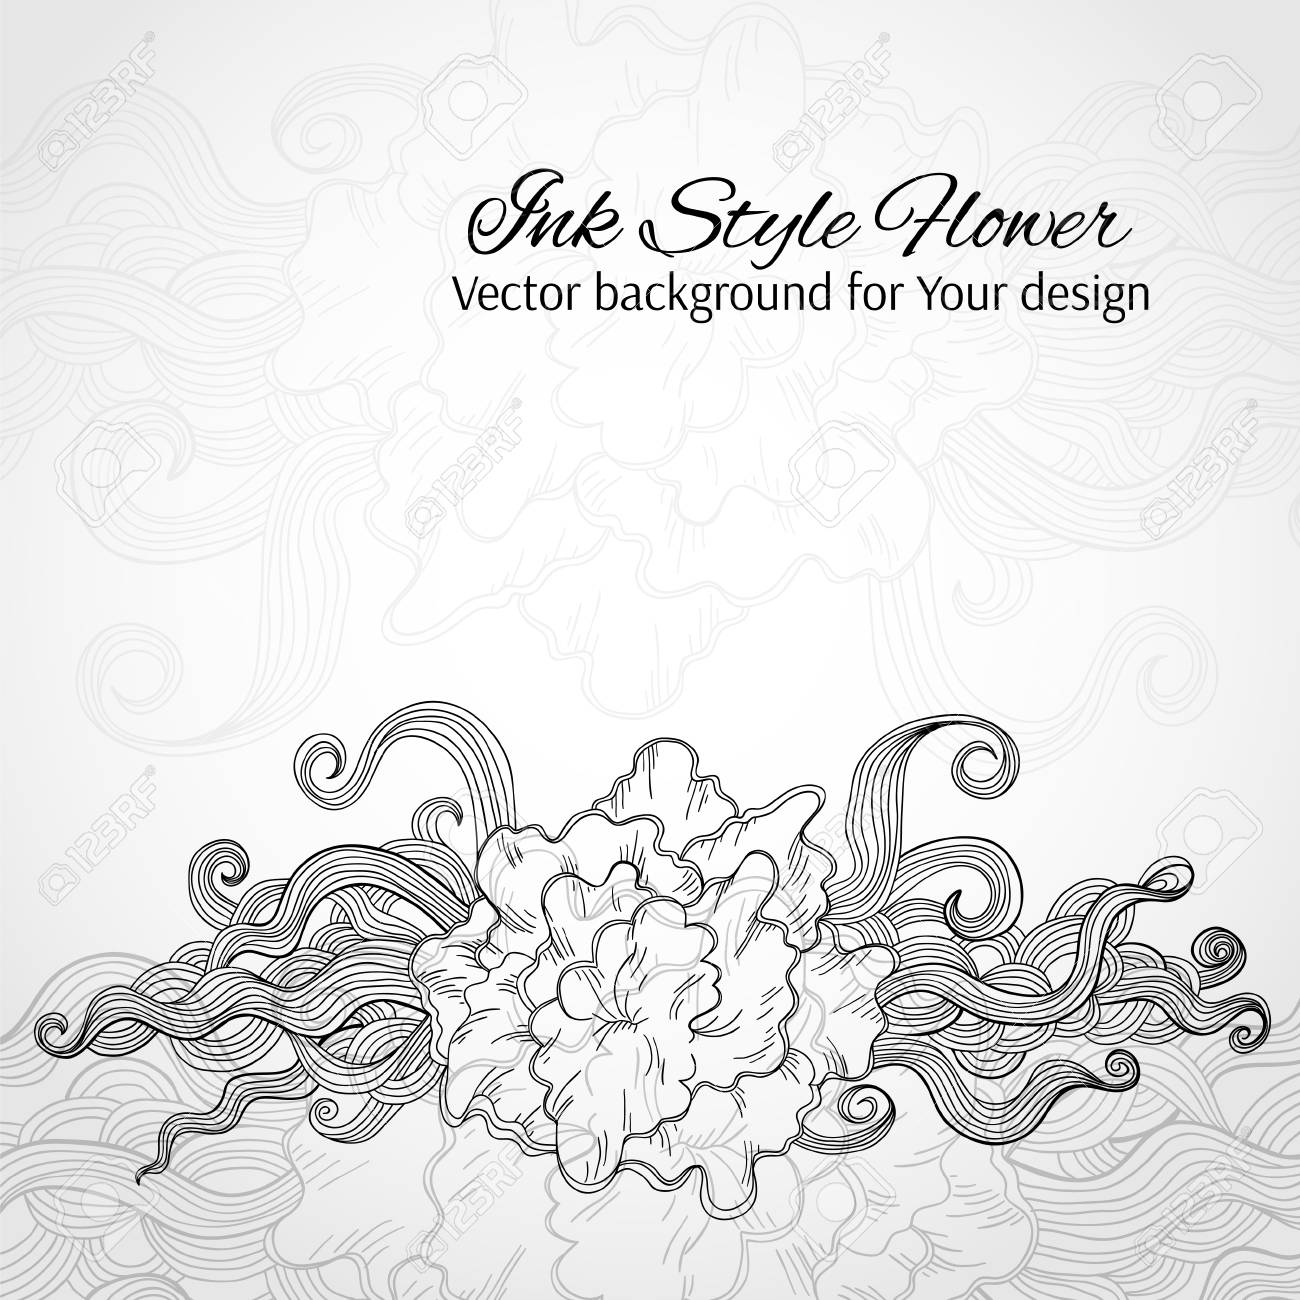 Doodle stylized flower. Abstract vector background for Your design Stock Vector - 23349283